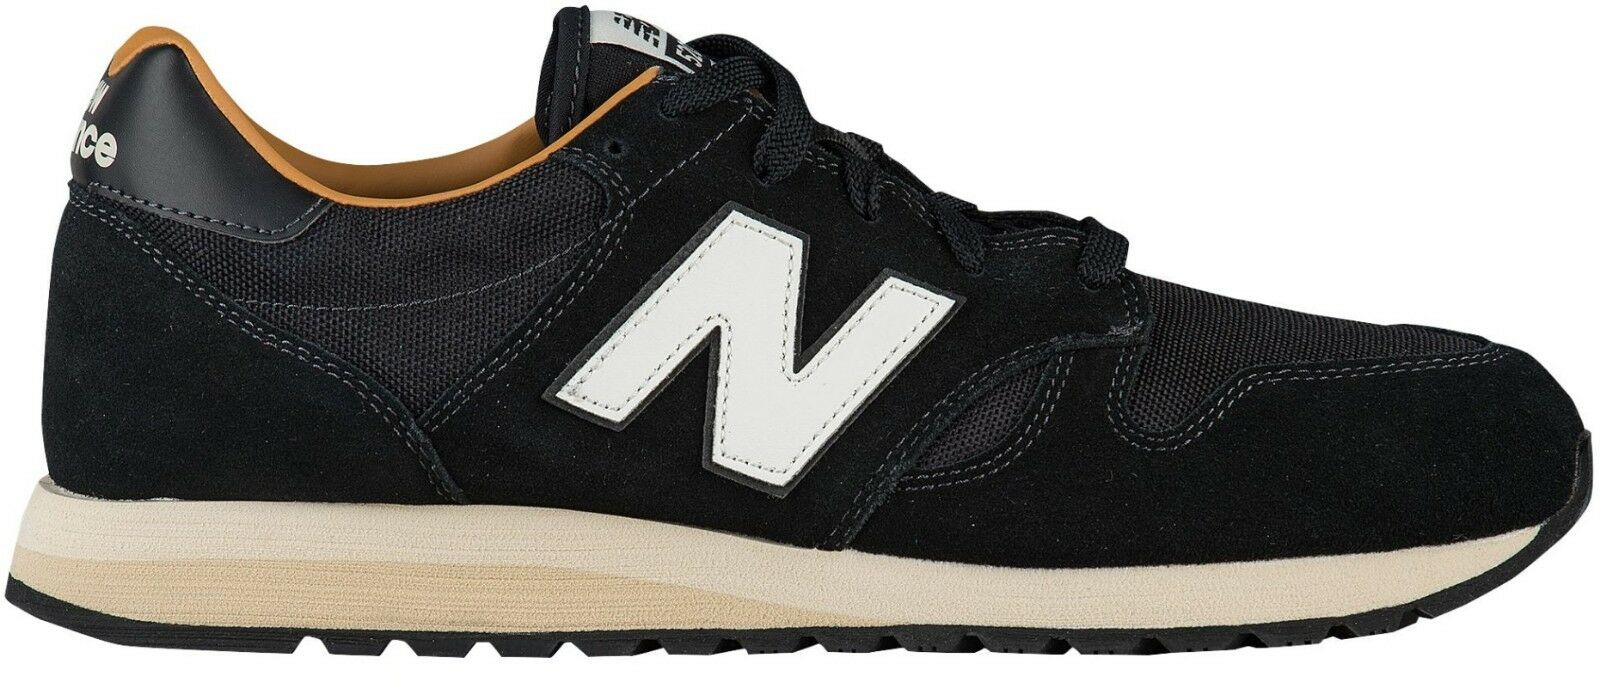 New Balance Men's 520 SUEDE b BLACK Running Shoes U520BH b SUEDE a1e6fc